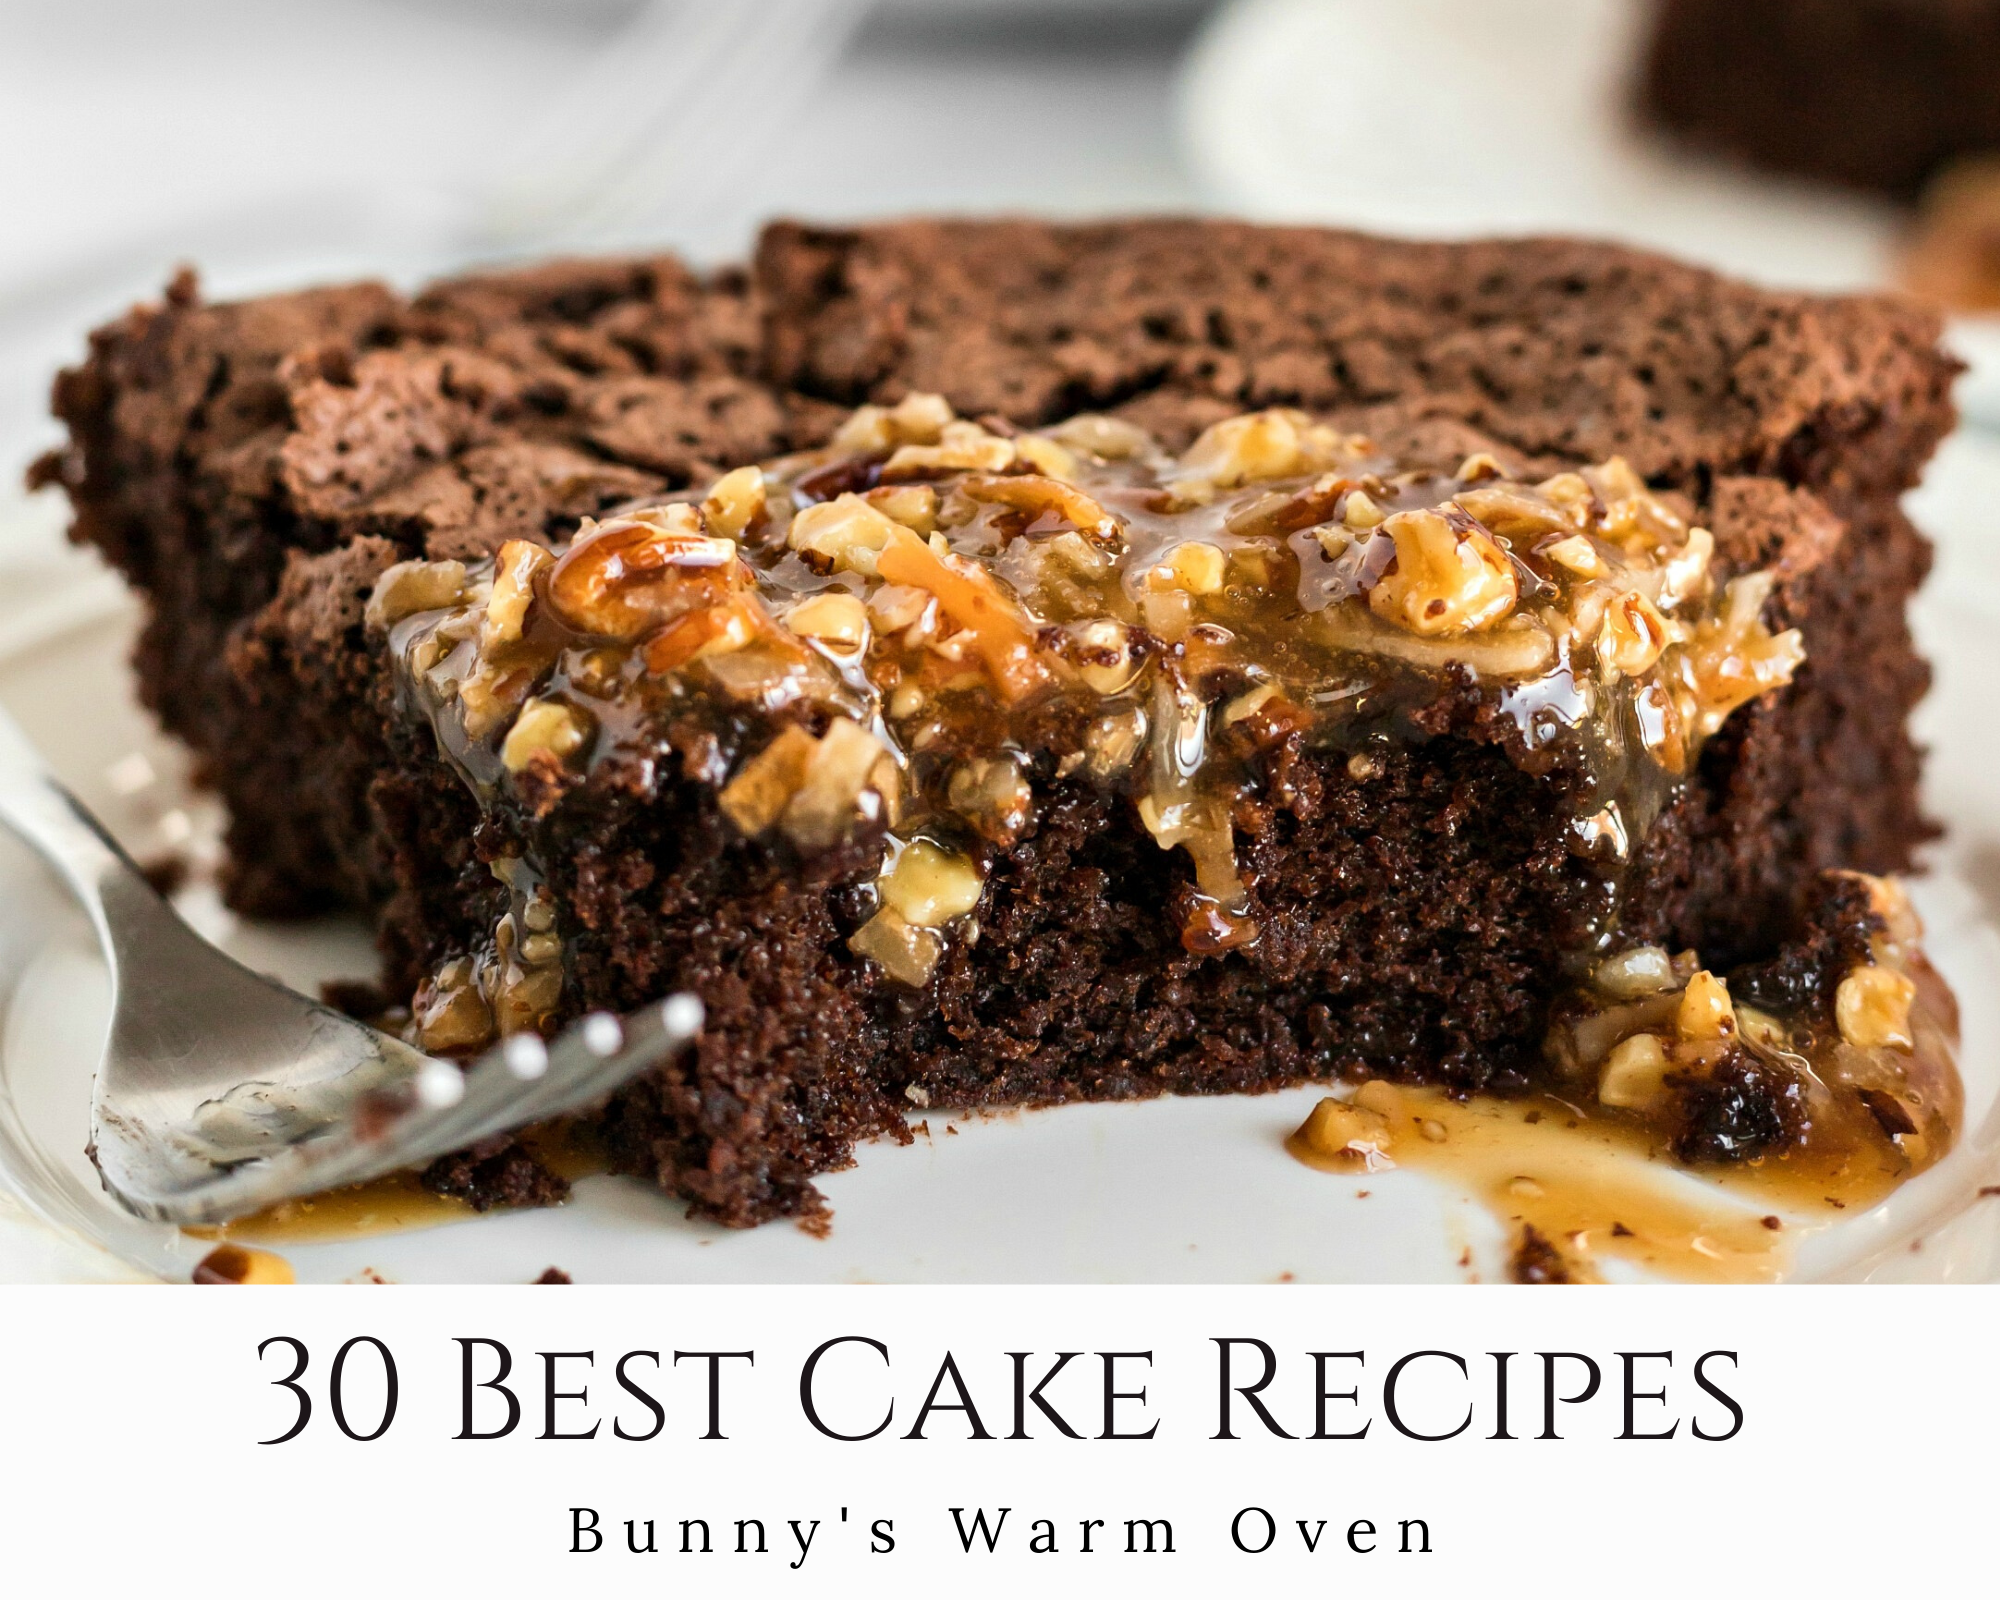 30 Best Cake Recipes For Any Holiday Bunny S Warm Oven